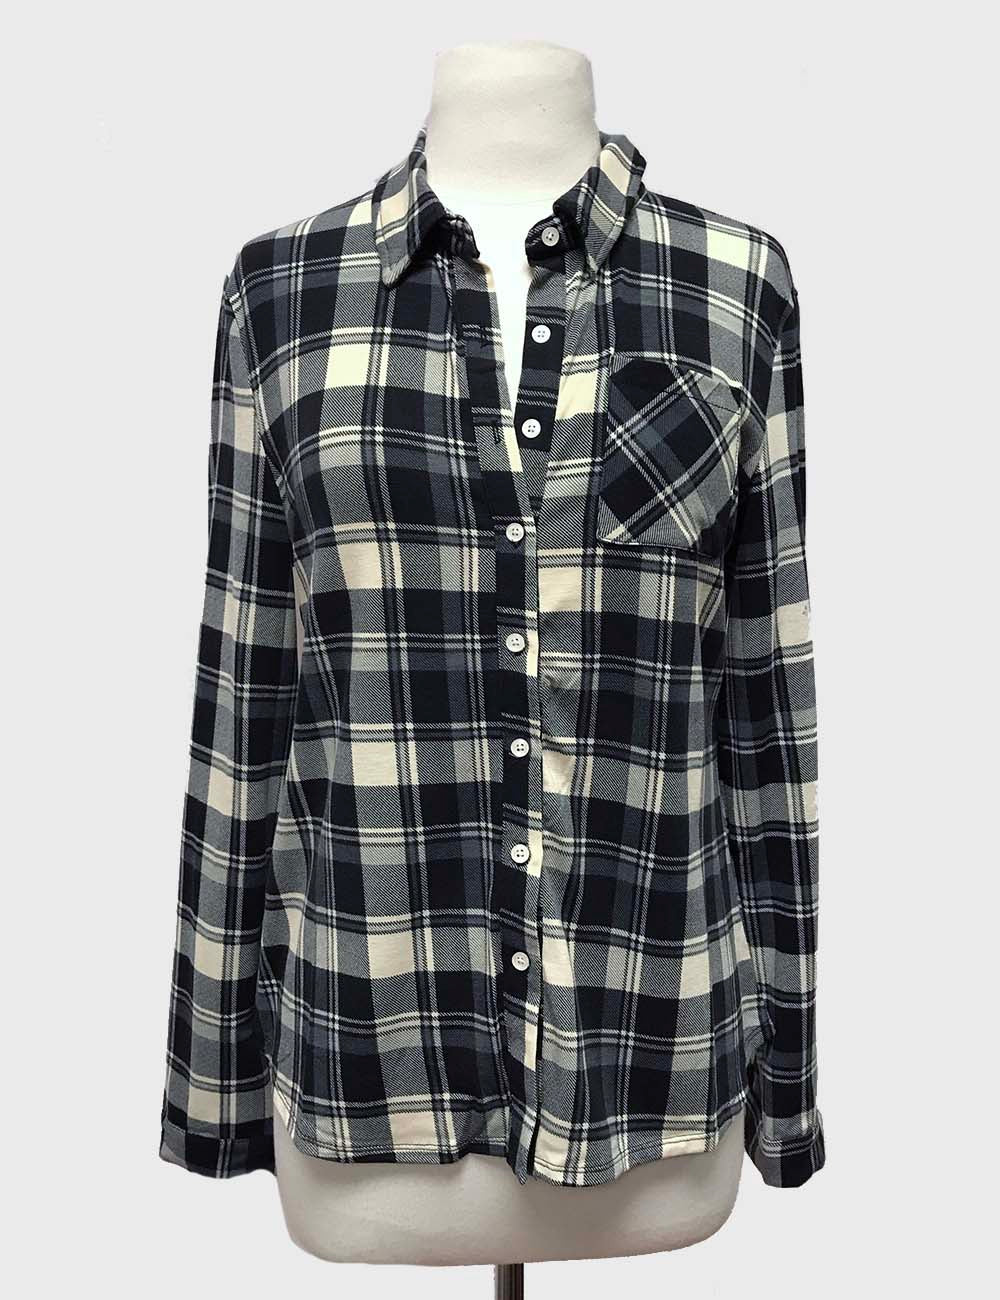 Black And White Plaid Shirt $15/each